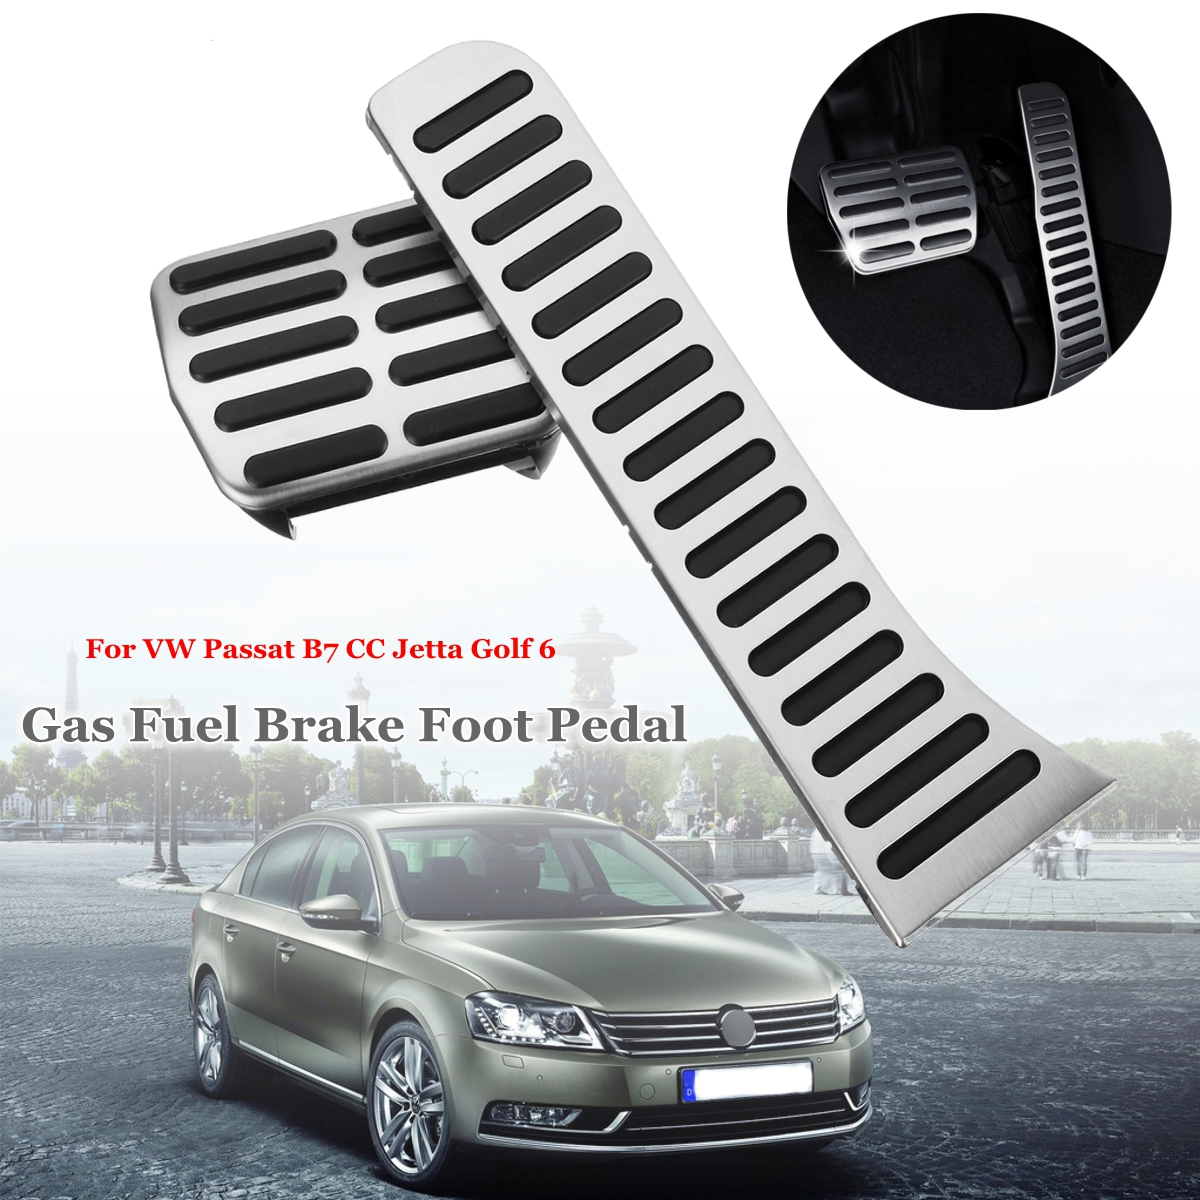 2pcs Car Styling Accelerator Brake Cover Gas Fuel Brake Foot Pedals for VW Passat AT B7 CC Jetta Golf 6 Right Hand Drive